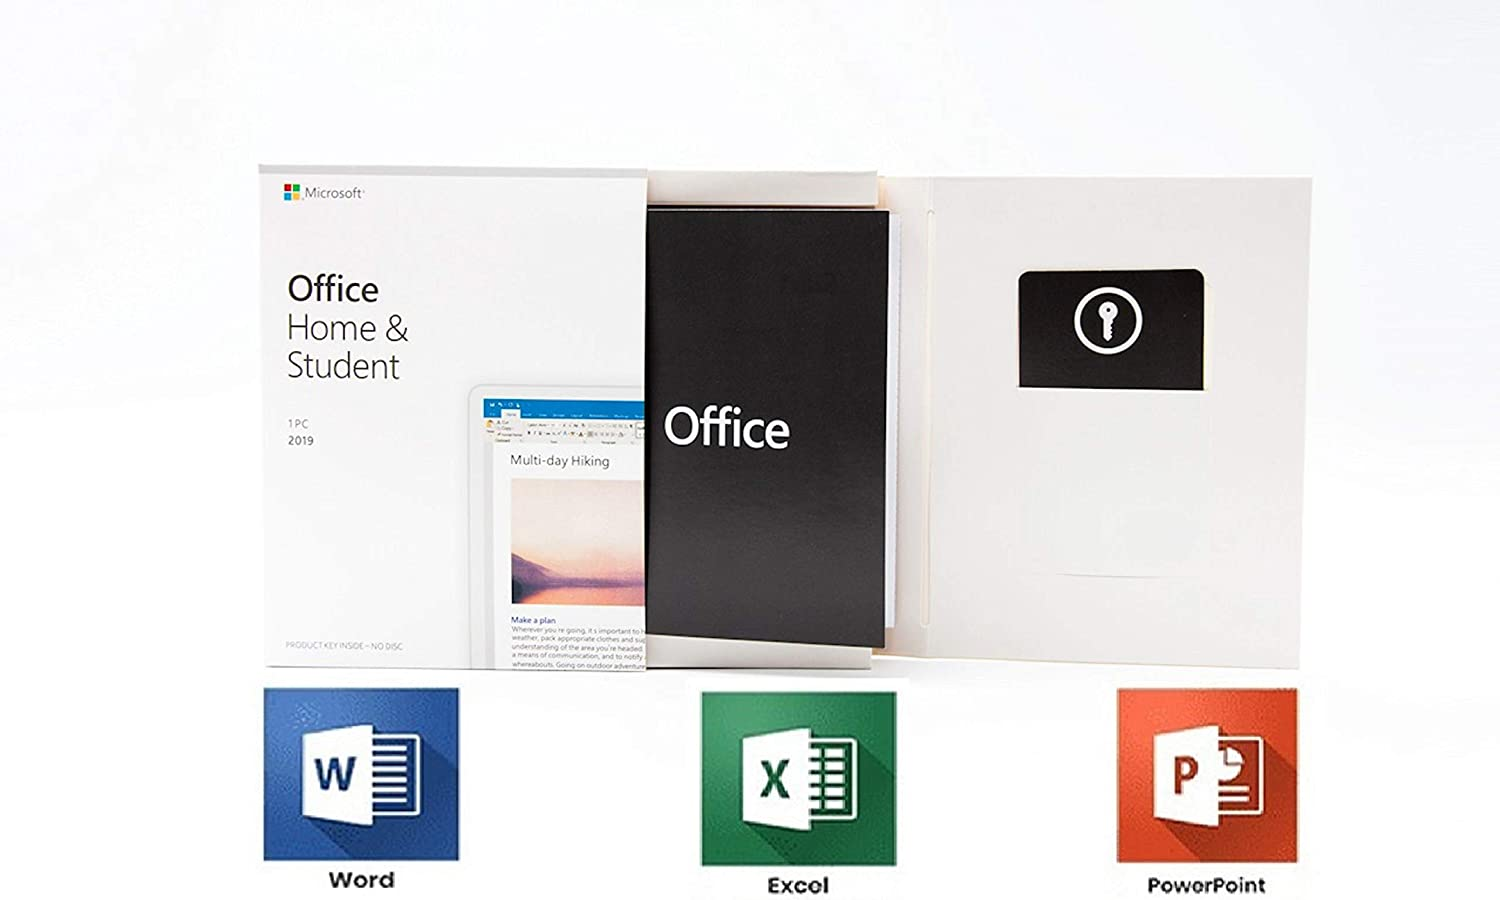 Office 2019 Home and Student / 1 PC / Only Windows 10 / 1 User / Box / Original Product / New / Office 2019 Home & Student